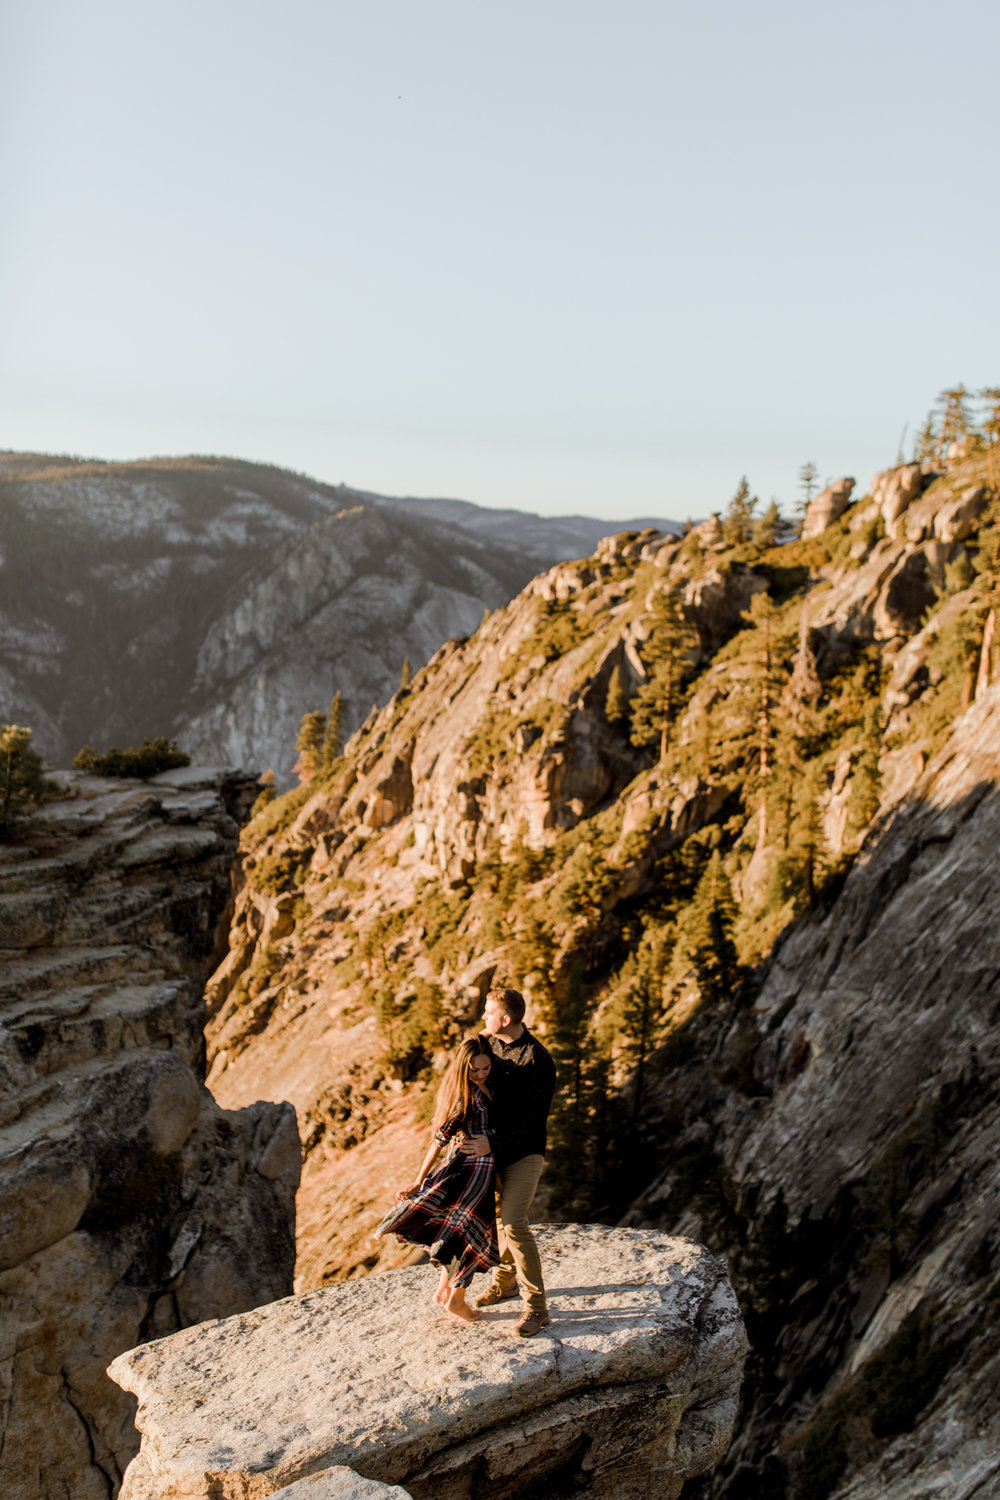 yosemite adventure session // national park wedding photographer // www.abbihearne.com